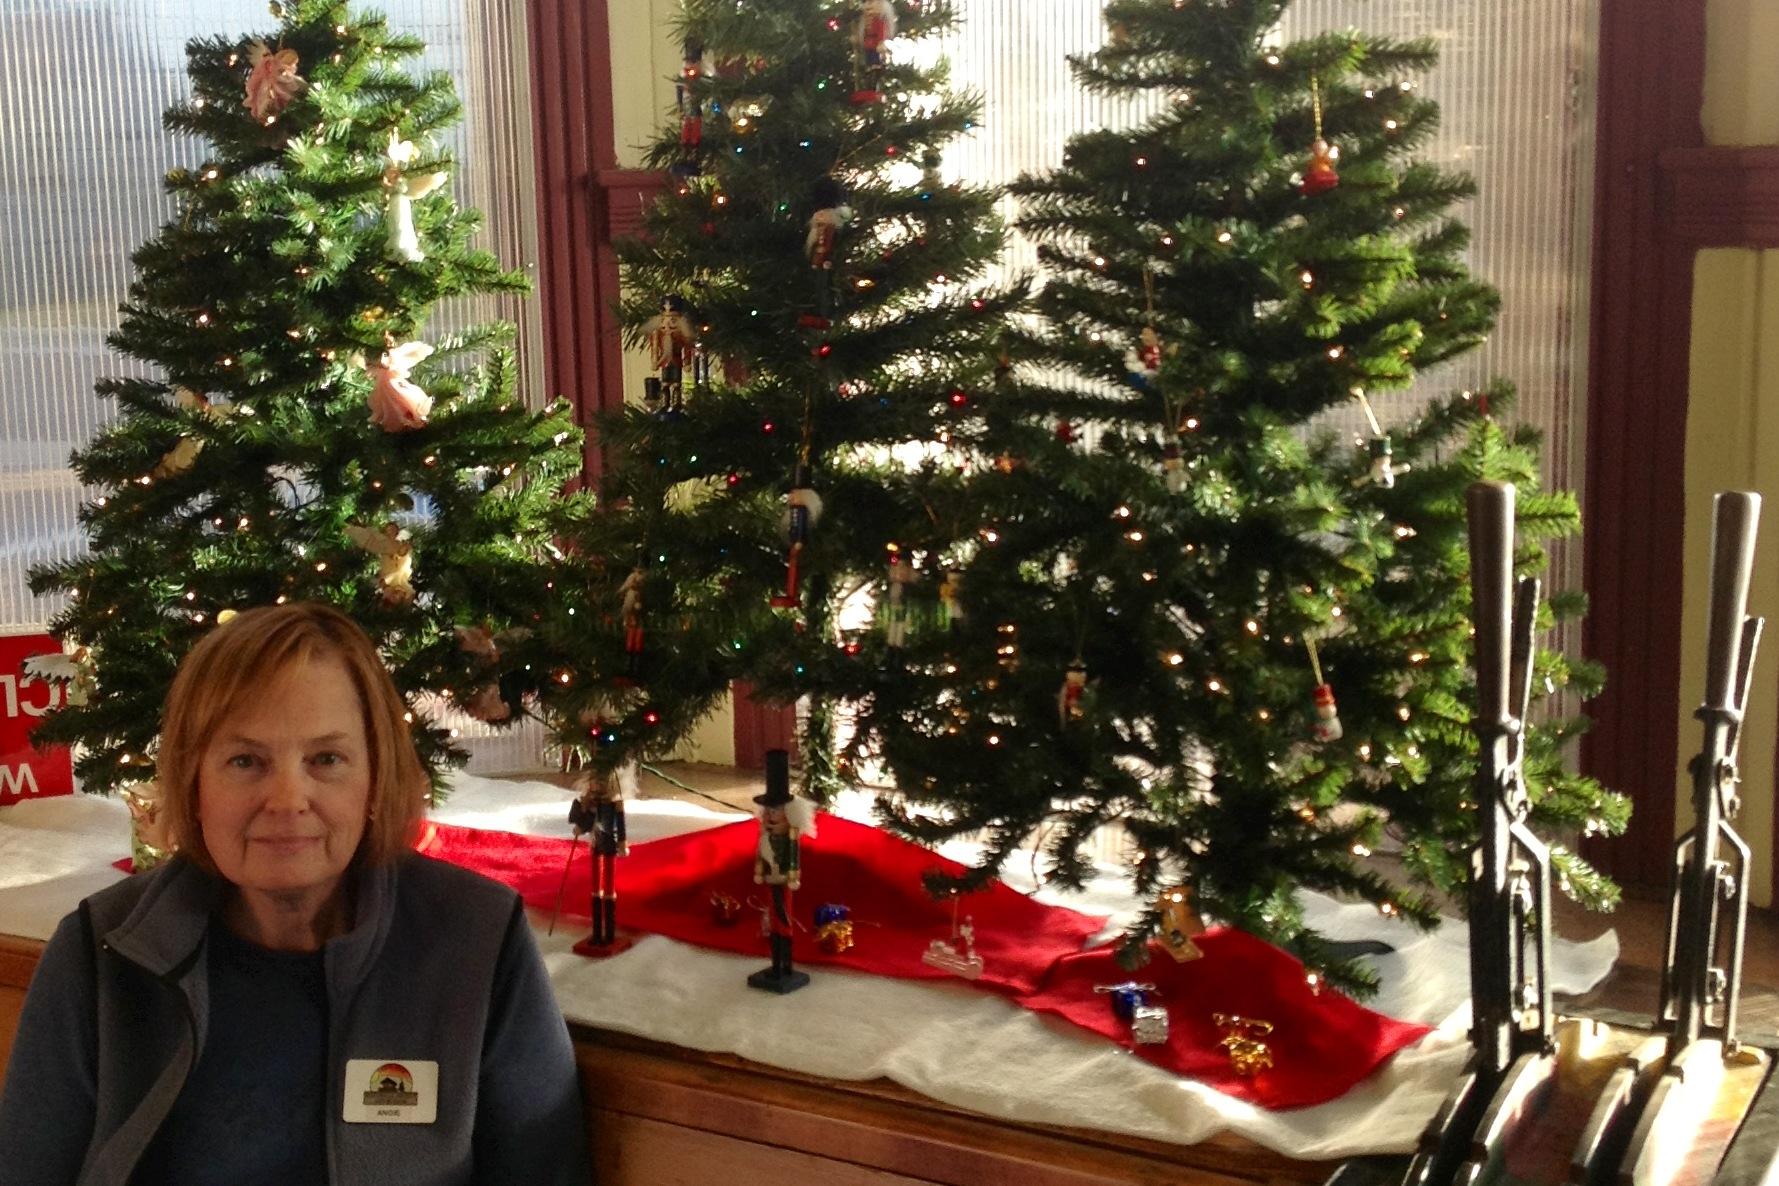 Merry Christmas from Museum Director Angie Deleo and the Castle Rock Museum staff!